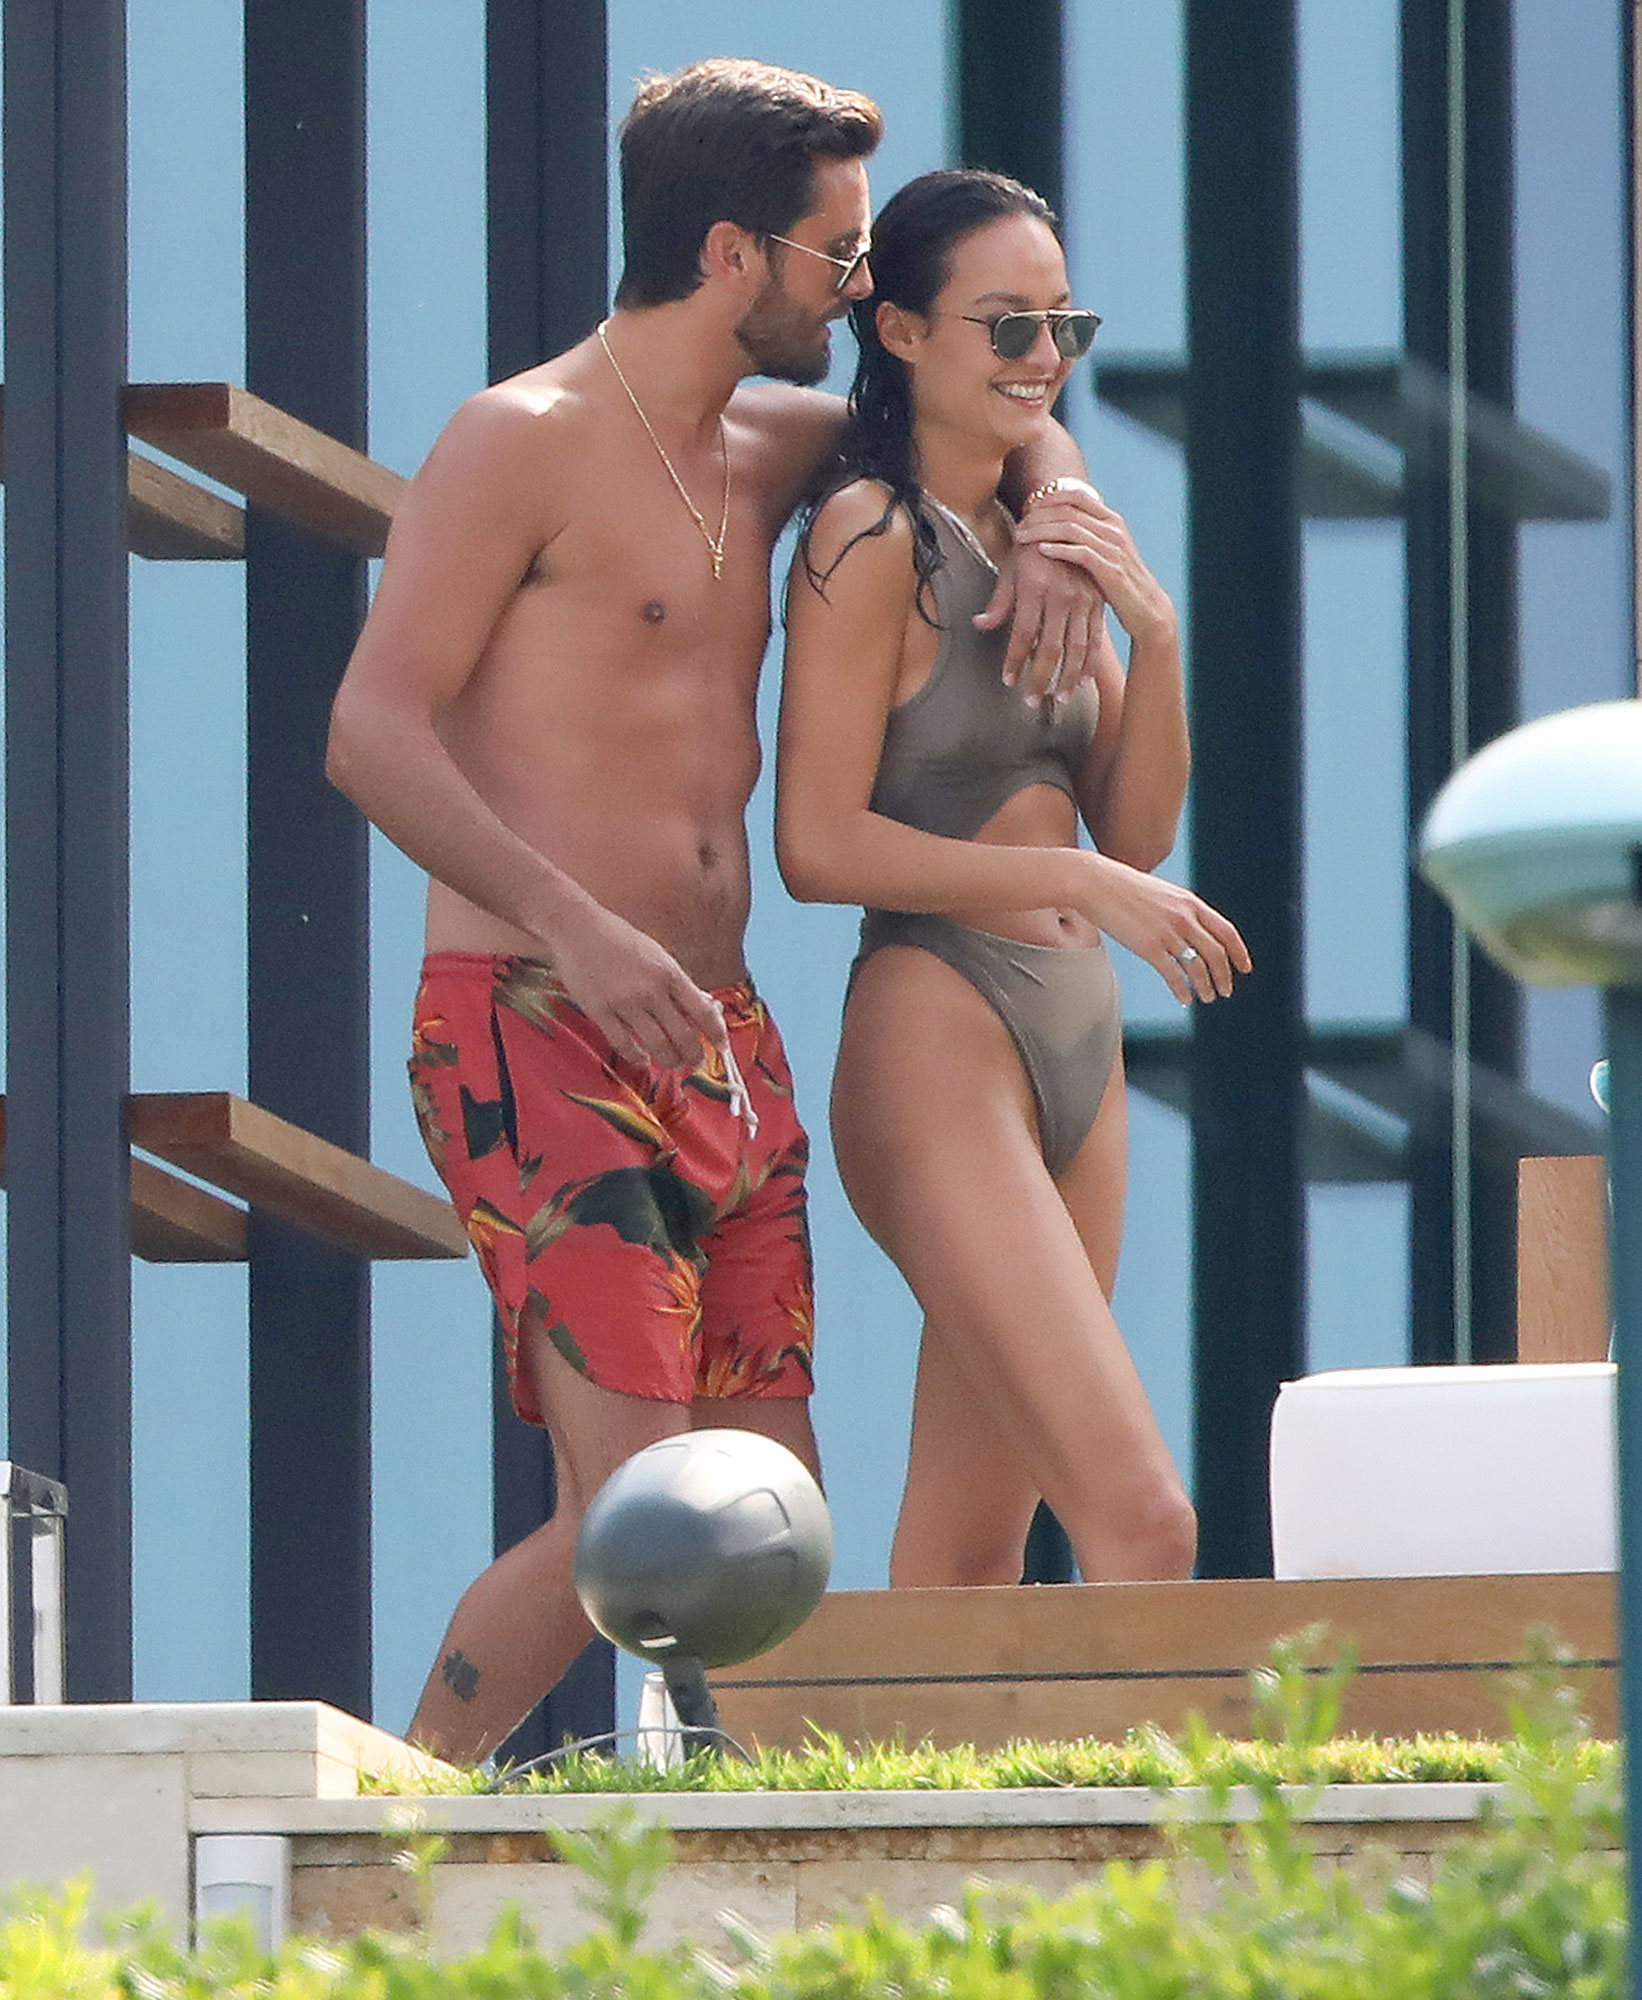 EXCLUSIVE: **PREMIUM EXCLUSIVE RATES APPLY** Scott Disick is seen with a new brunette one day after serious PDA with Bella Thorne - as she is nowhere to be seen!